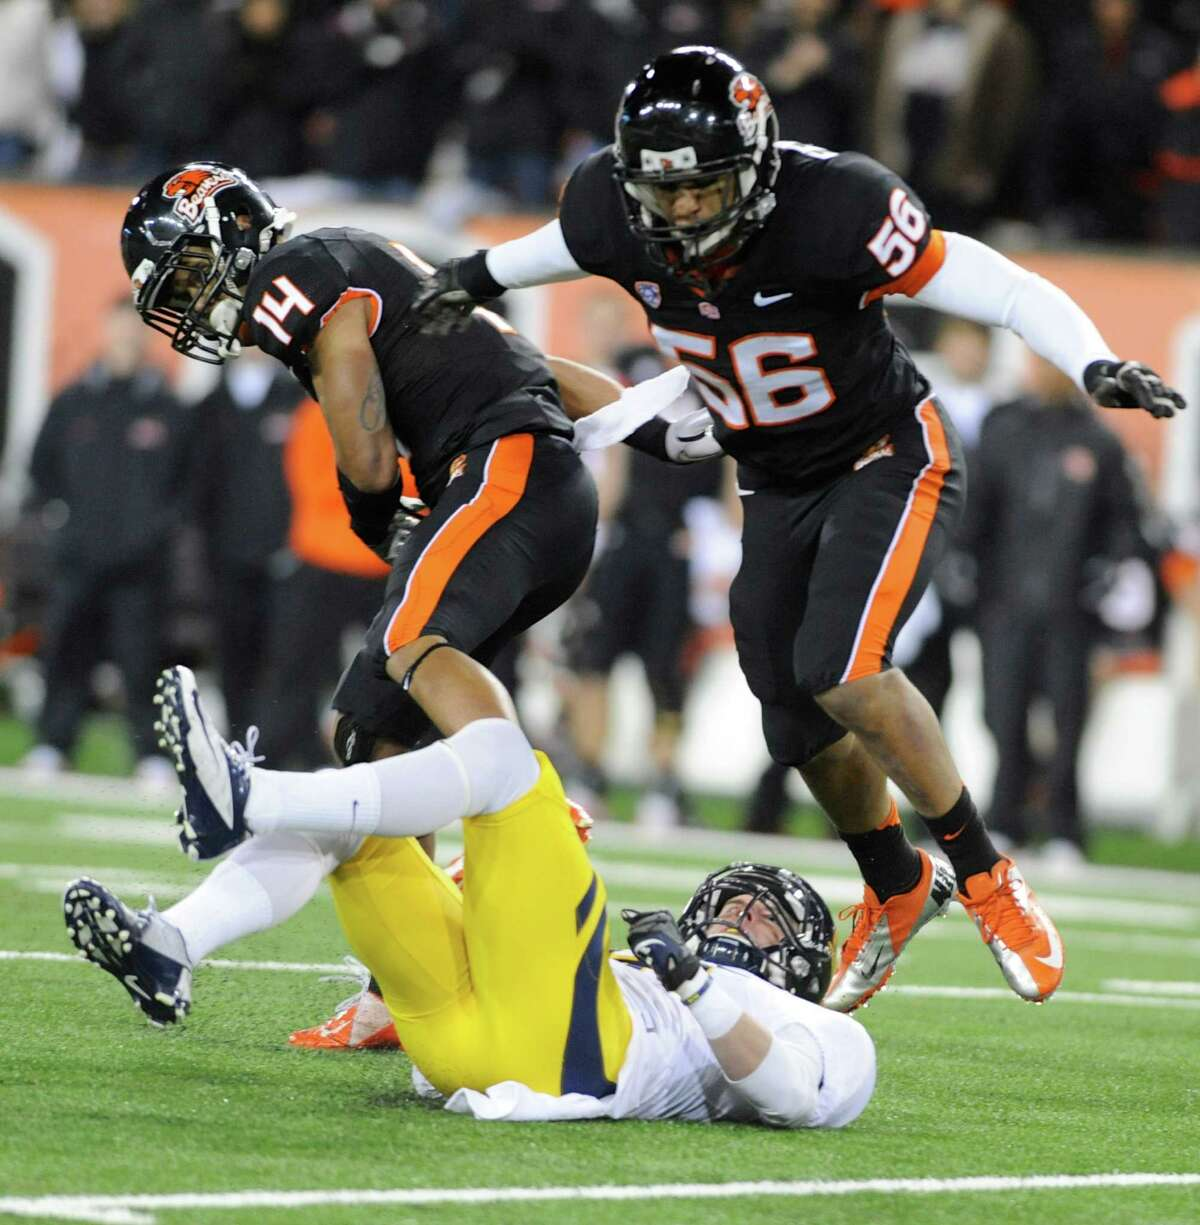 Oregon State's Jordan Poyer (14) and Rusty Fernando (56) break up a pass to California's Chris Harper (6) during the first half of an NCAA college football game in Corvallis, Ore., Saturday Nov.,17, 2012. (AP Photo/Greg Wahl-Stephens)